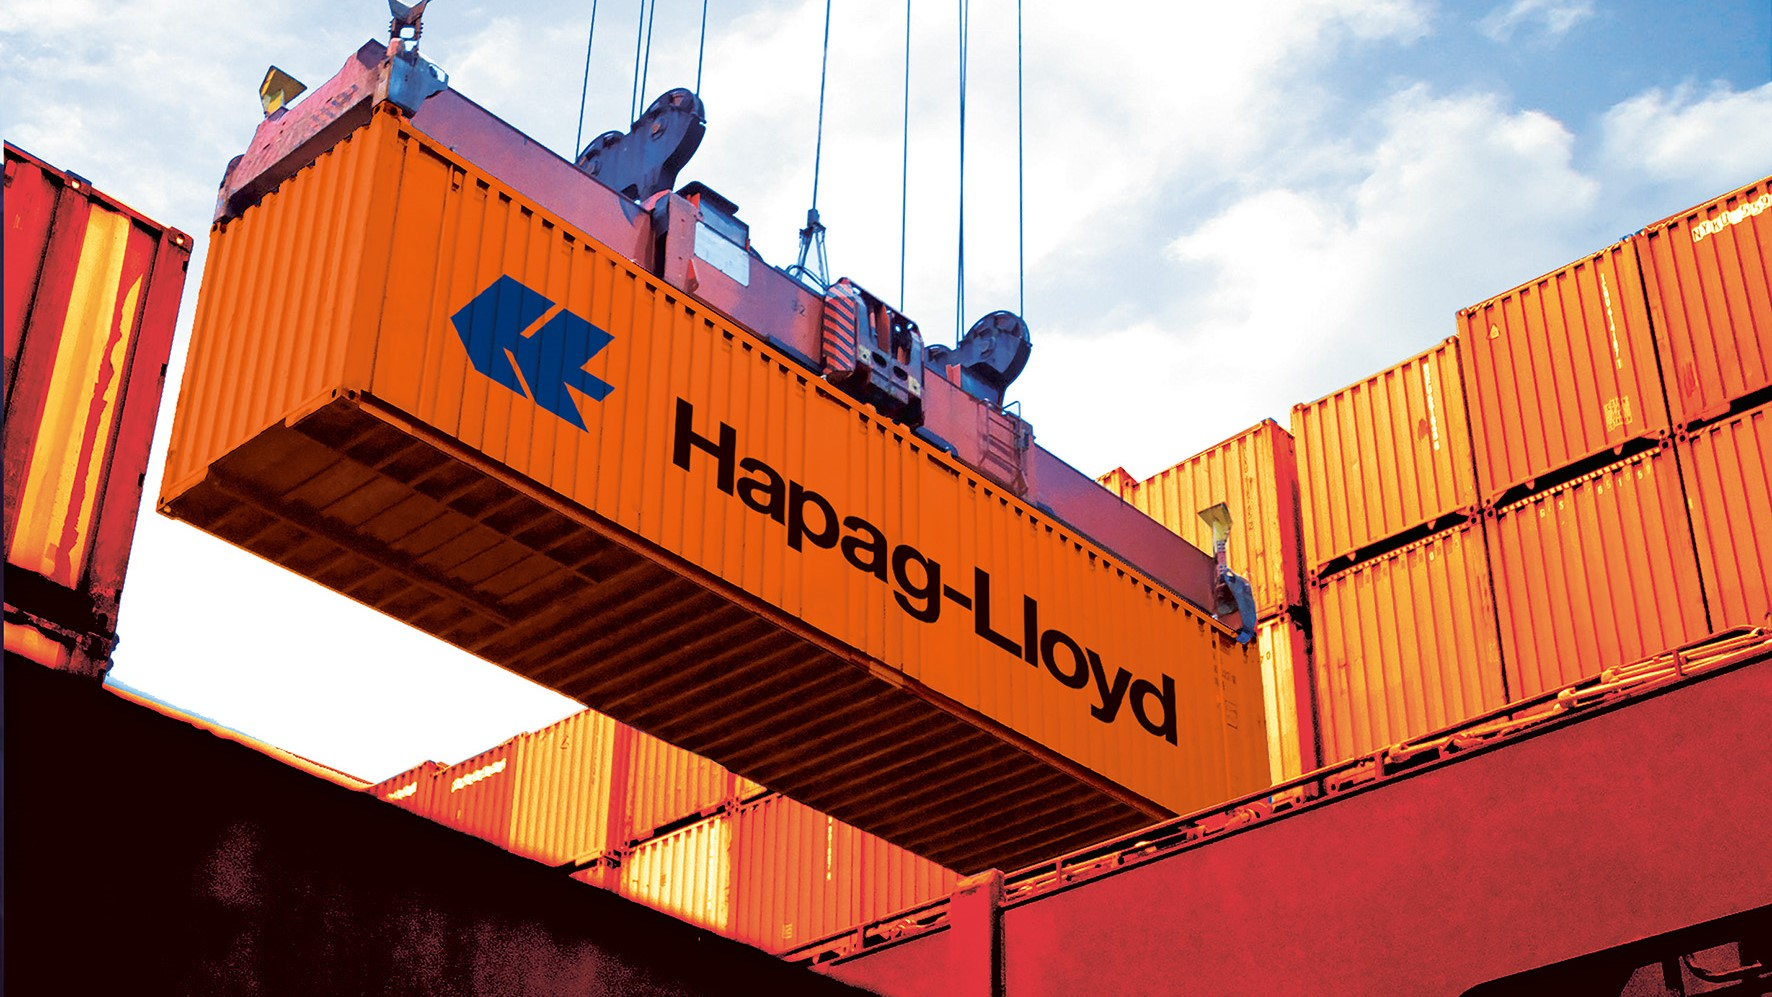 Moody´s has upgraded Hapag-Lloyd credit rating to B1 1